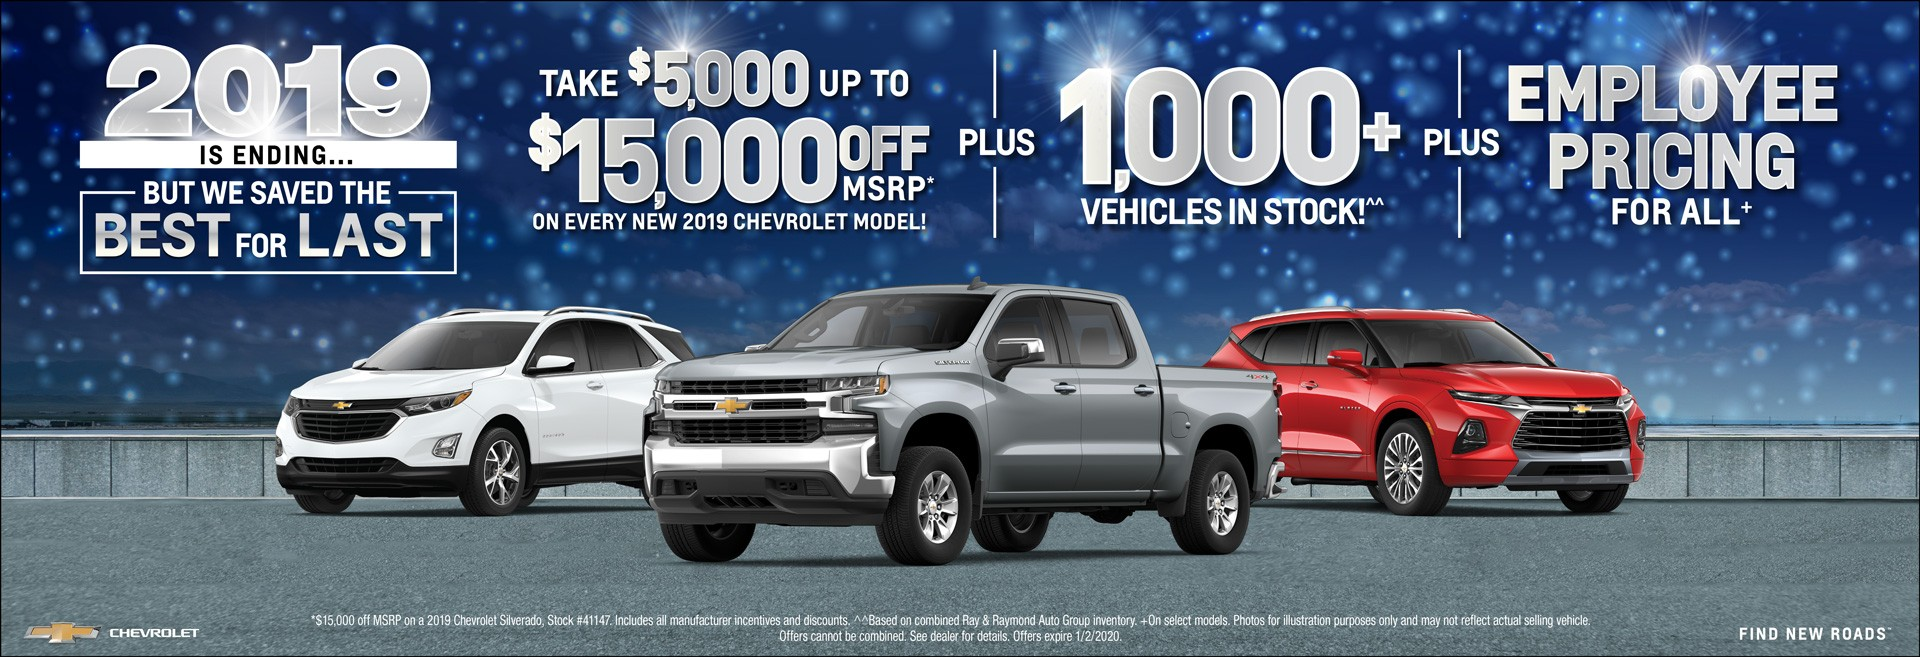 Best for Last - Take $5,000 up to $15,000 OFF MSRP + 1000 Vehicles in stock + Employee Pricing for all